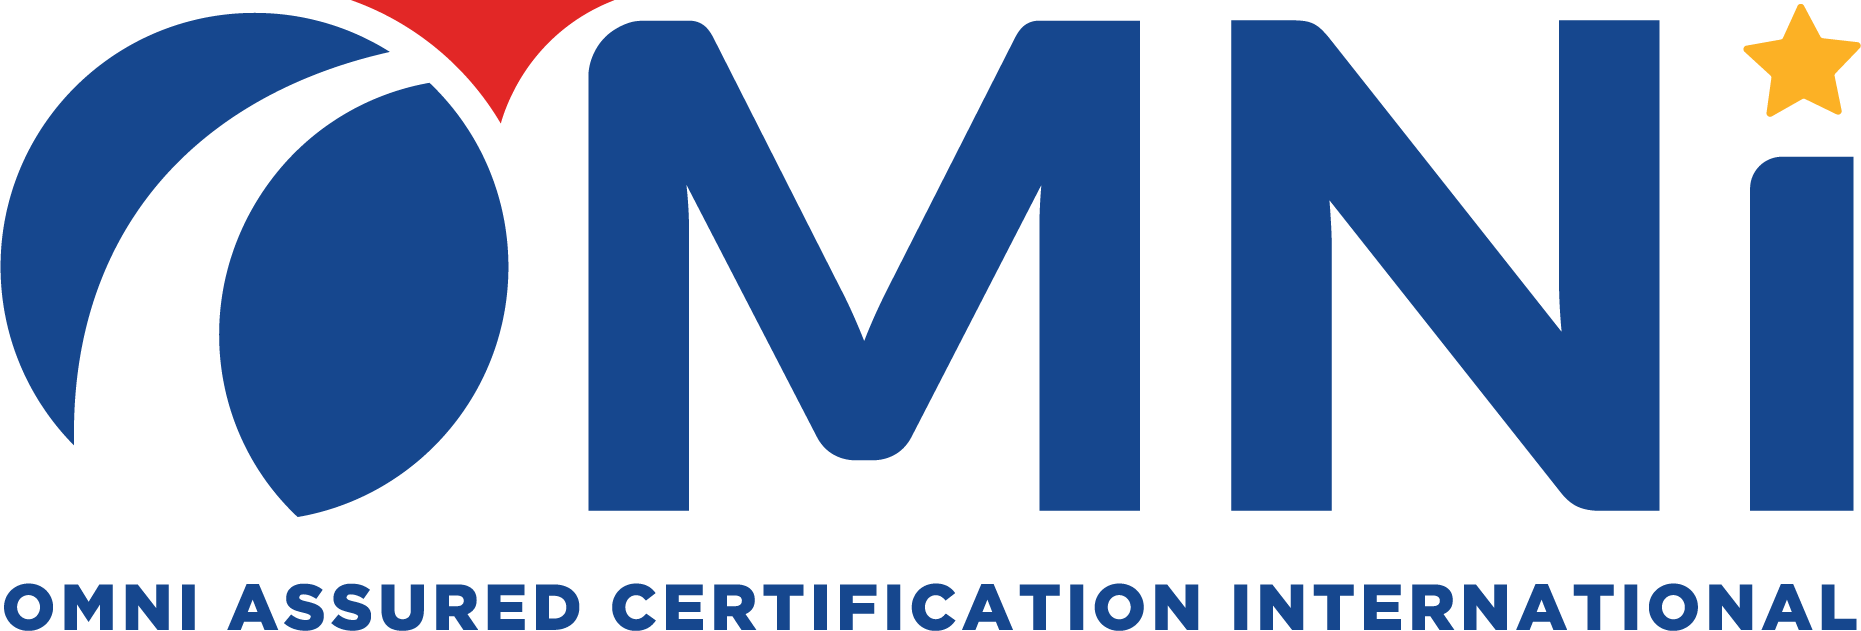 OMNI Assured Certification International - Accredited EN 1090 and ISO  Certification